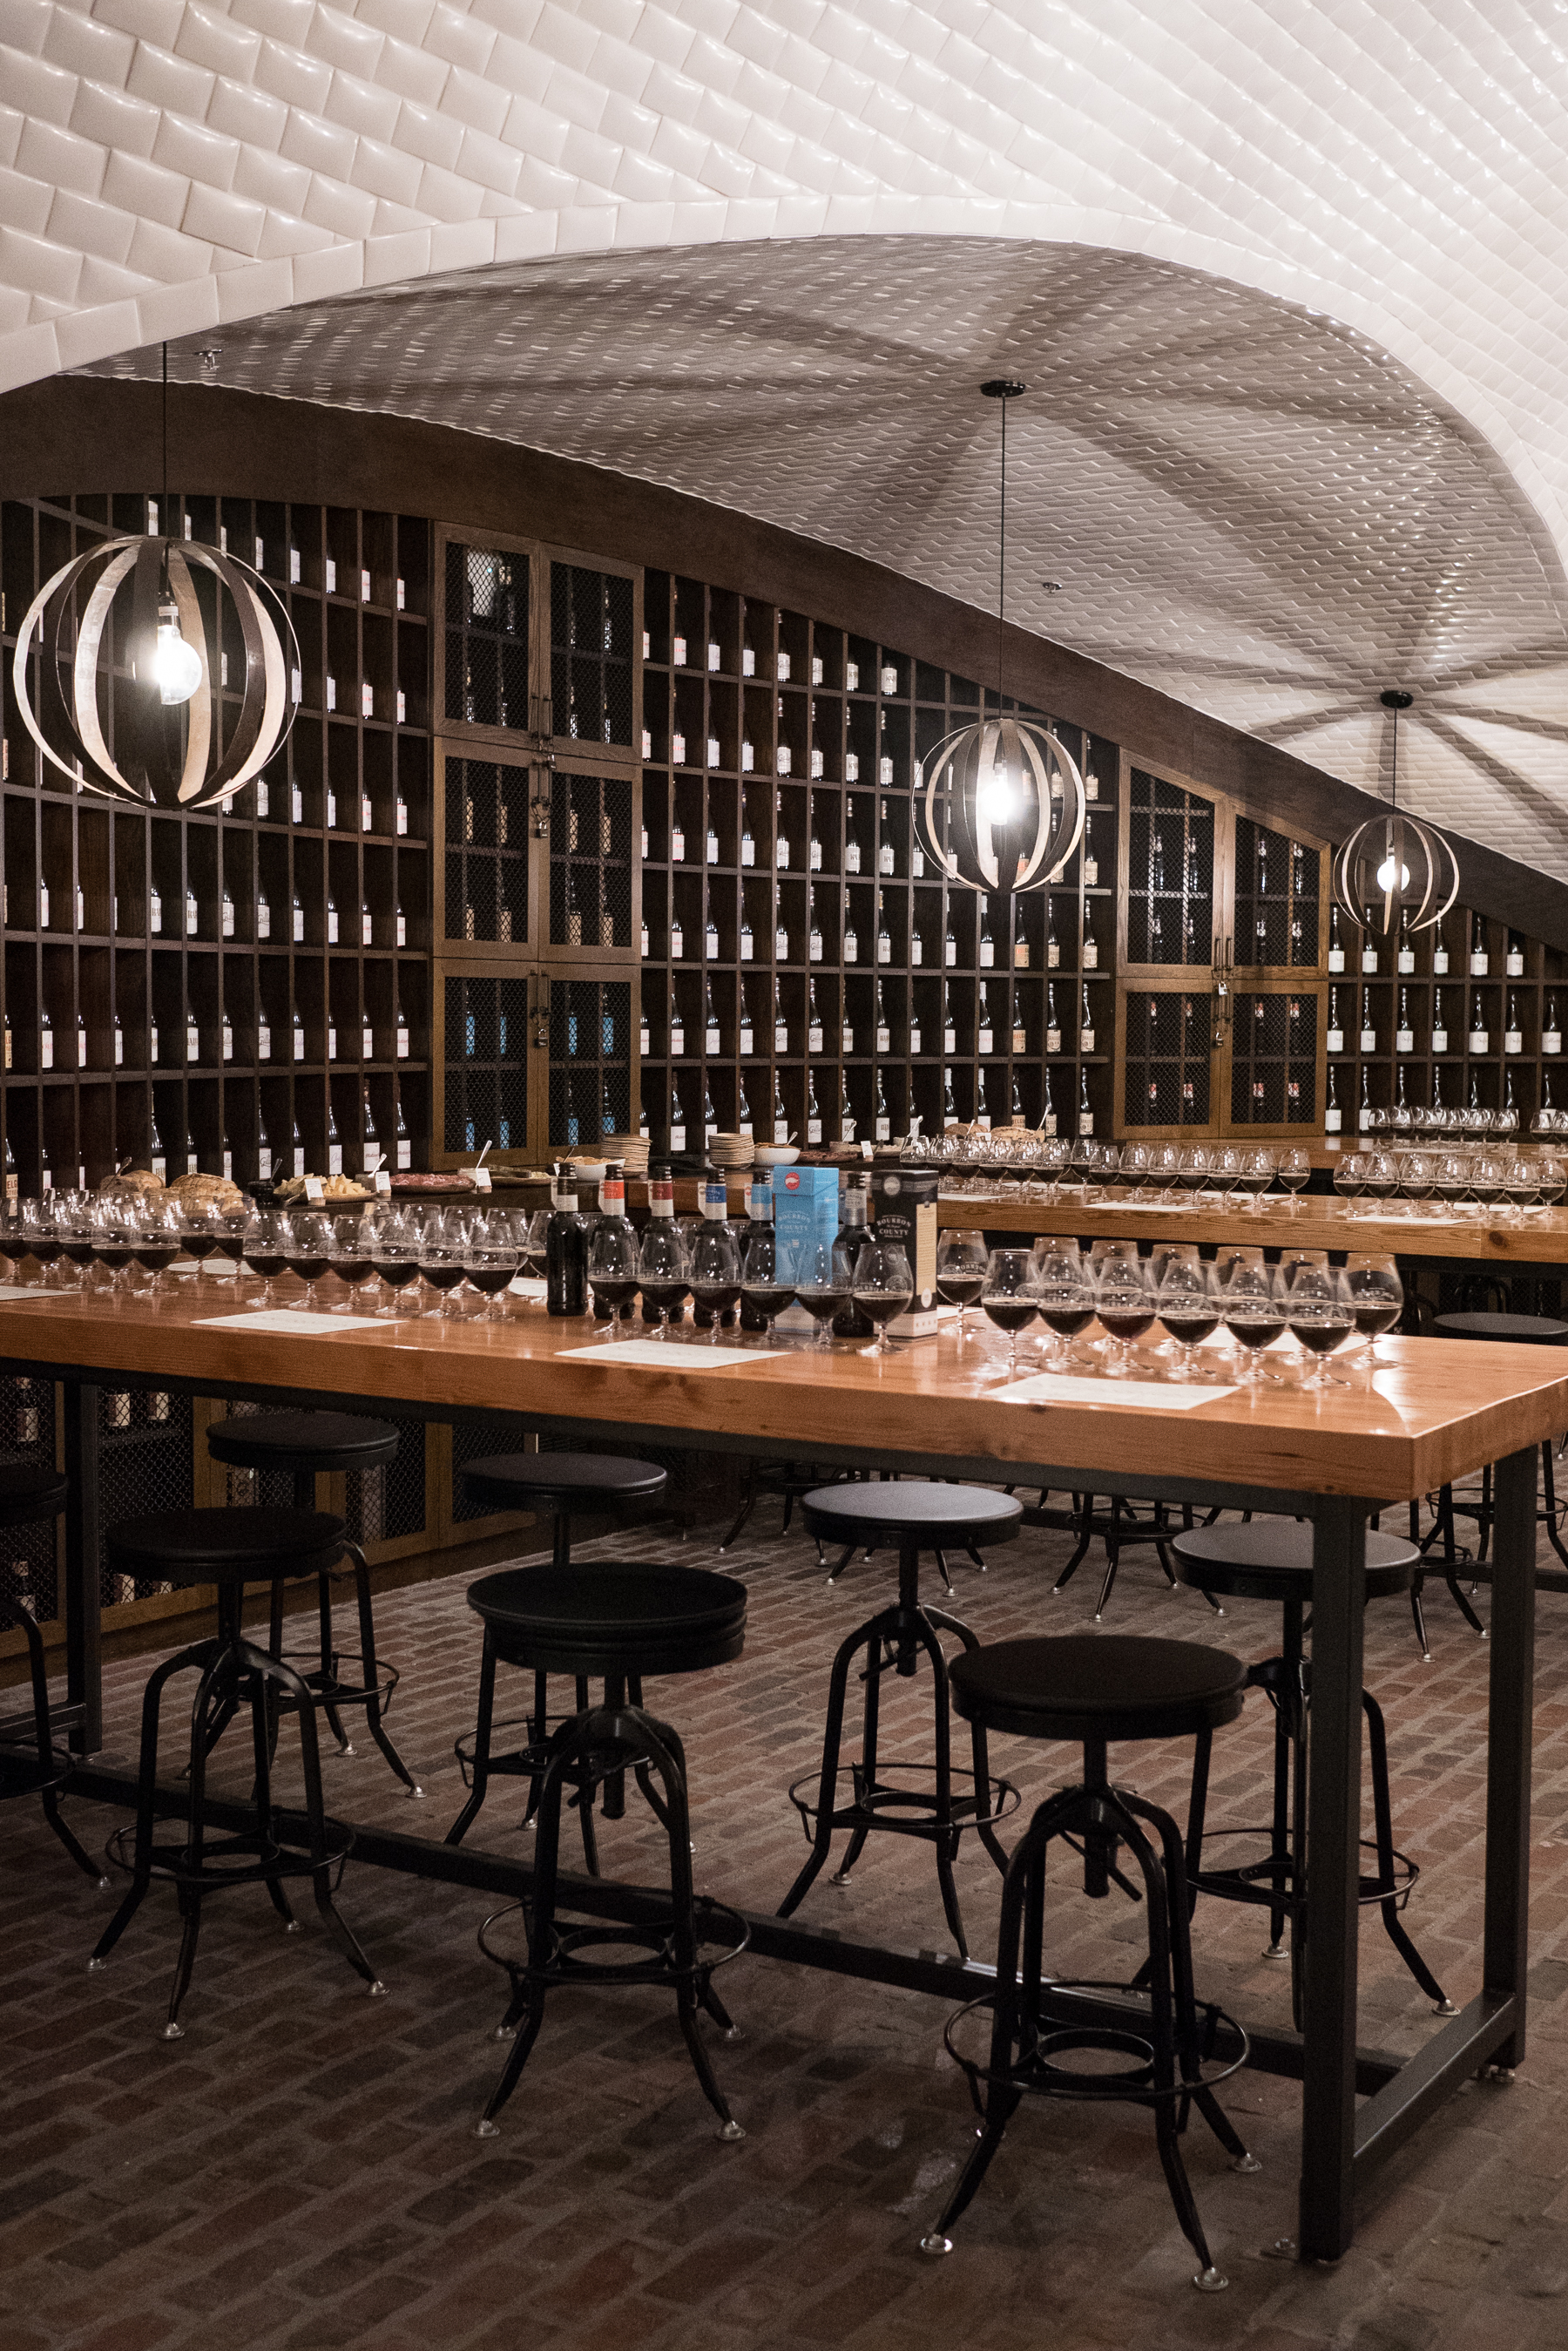 Goose Island's new    Barrel House   –complete with barrel vault ceilings–the venue for this year's tasting.